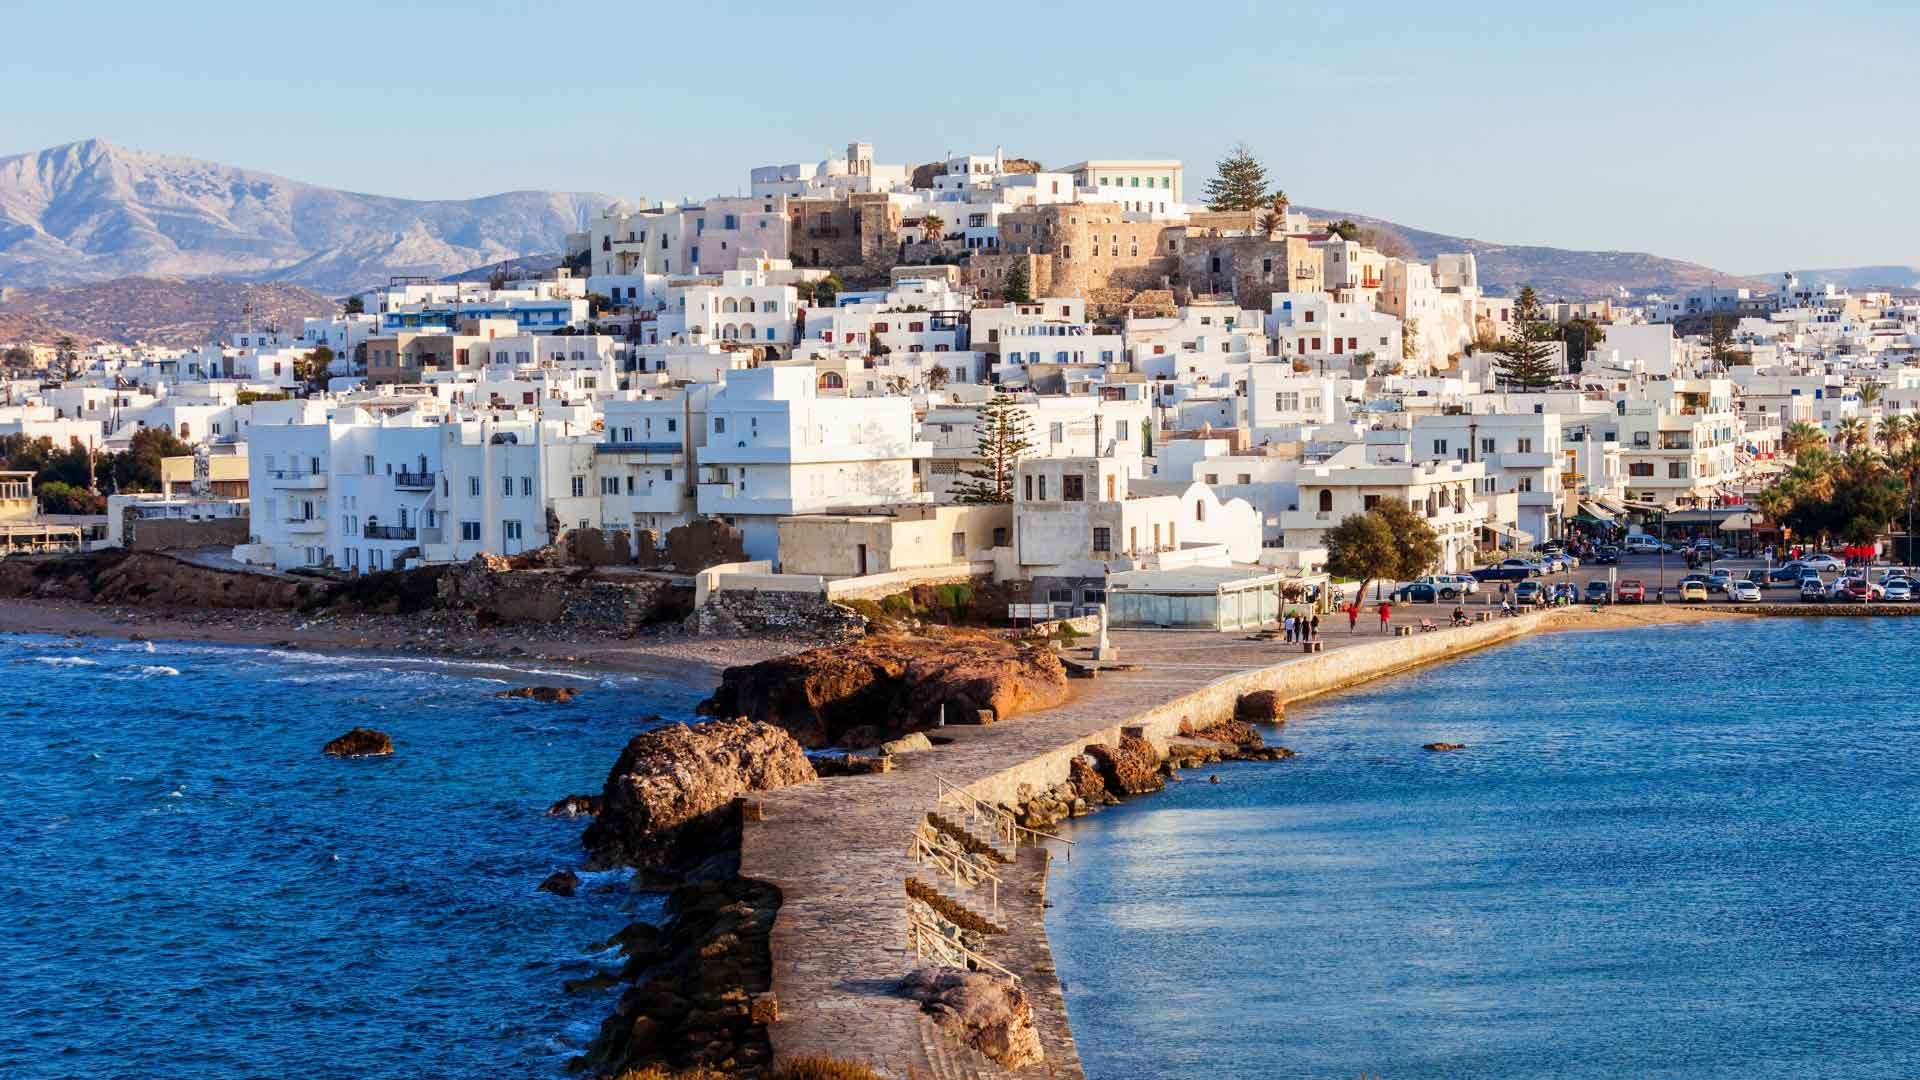 When Sleepless In Naxos, Drink Your Kitron With Lots Of Water